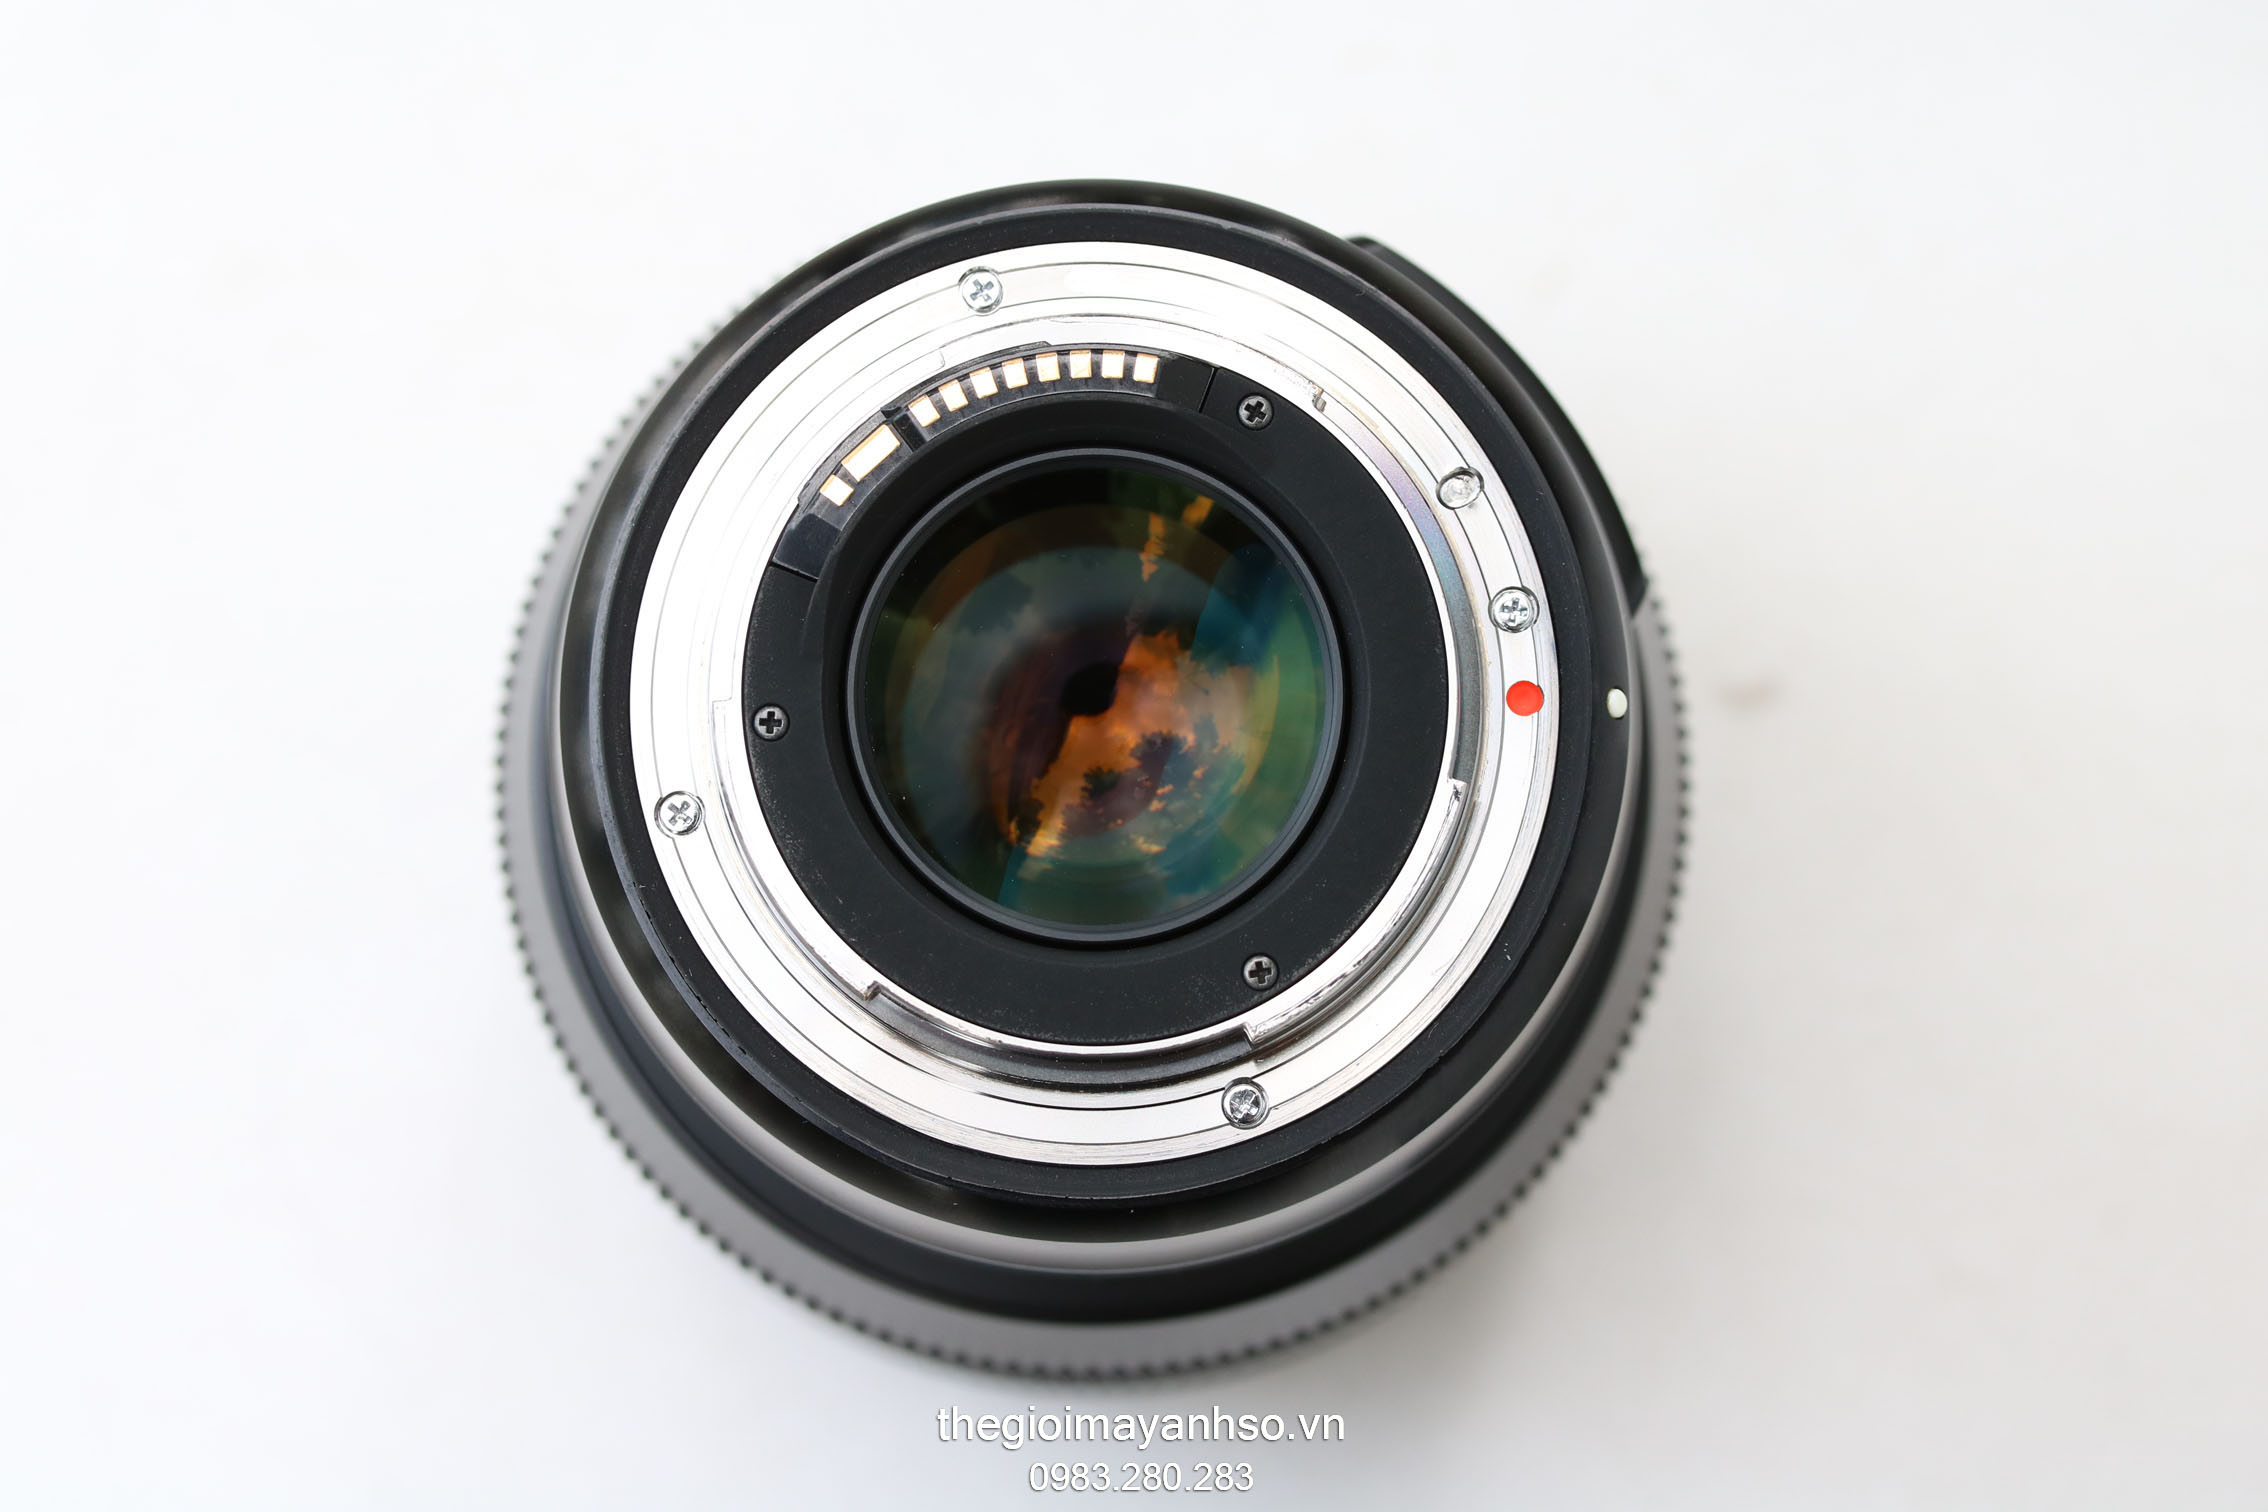 Sigma 85mm f/1.4 DG HSM Art for Canon